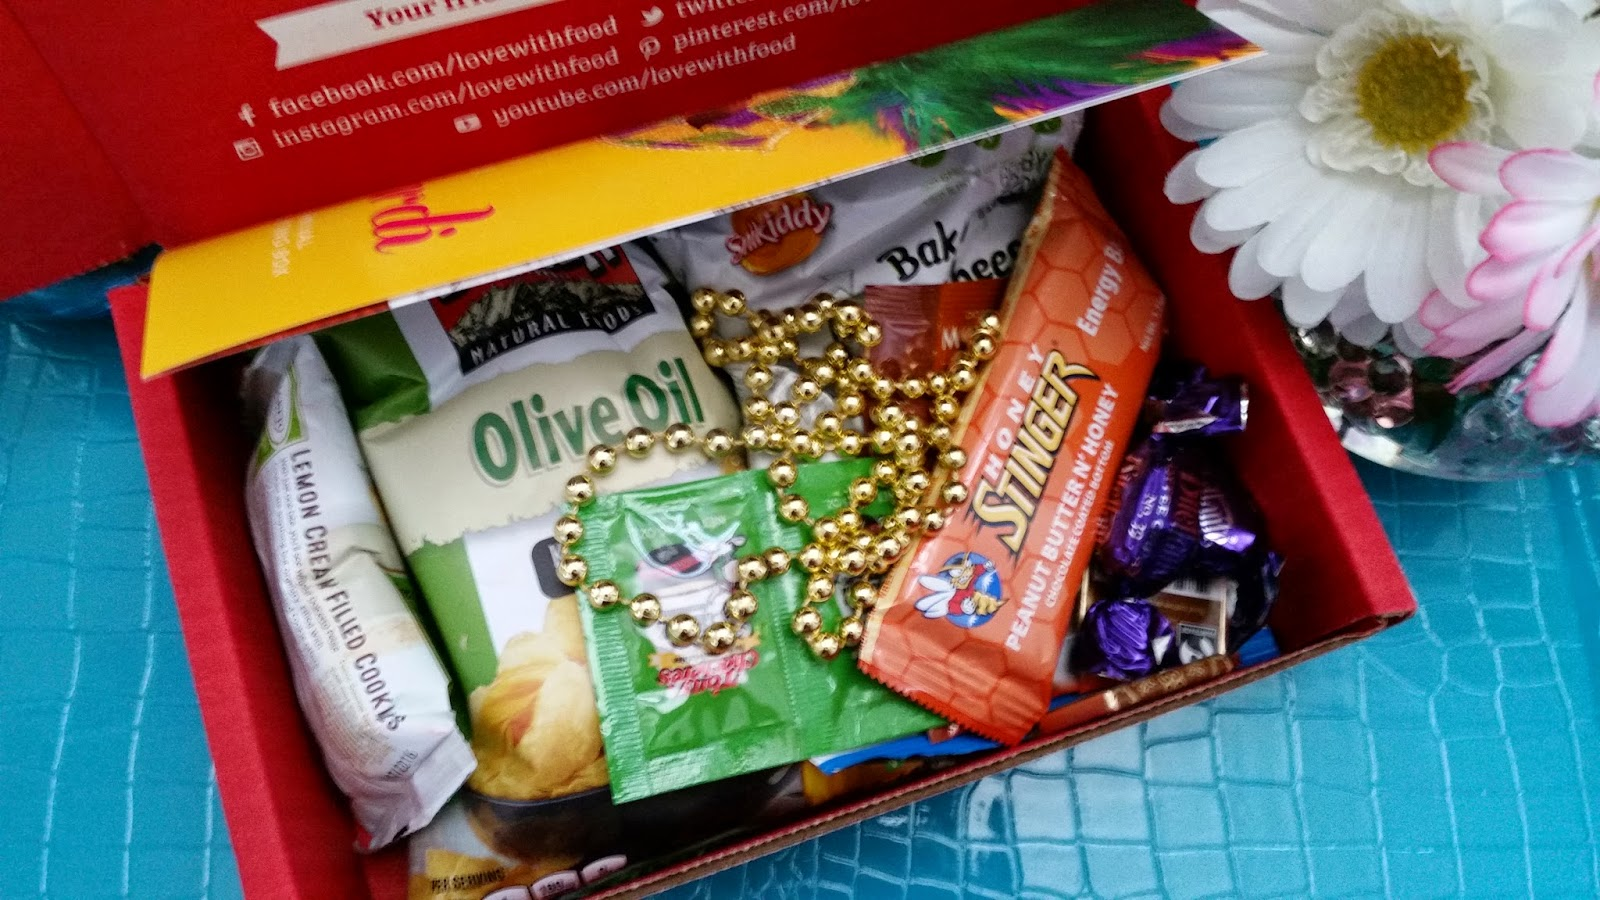 Review: February Love With Food Box